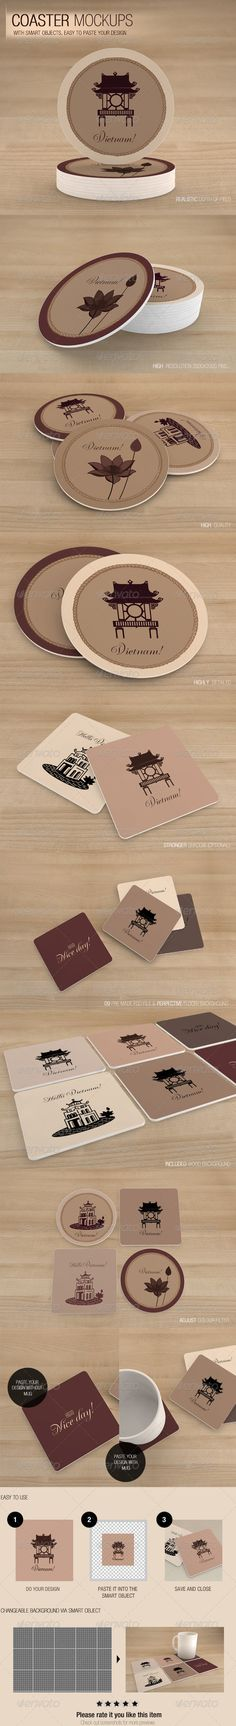 Coaster Mockups  Realistic depth of field High resolution 3000×2000 Pixel High quality Highly detailed Stronger shadow (Optional) 09 Pre made PSD files Perpective floor/ background Included wood background Adjust colour filter Include documentation .pdf Free cup (Optional) Changeable background via smart object